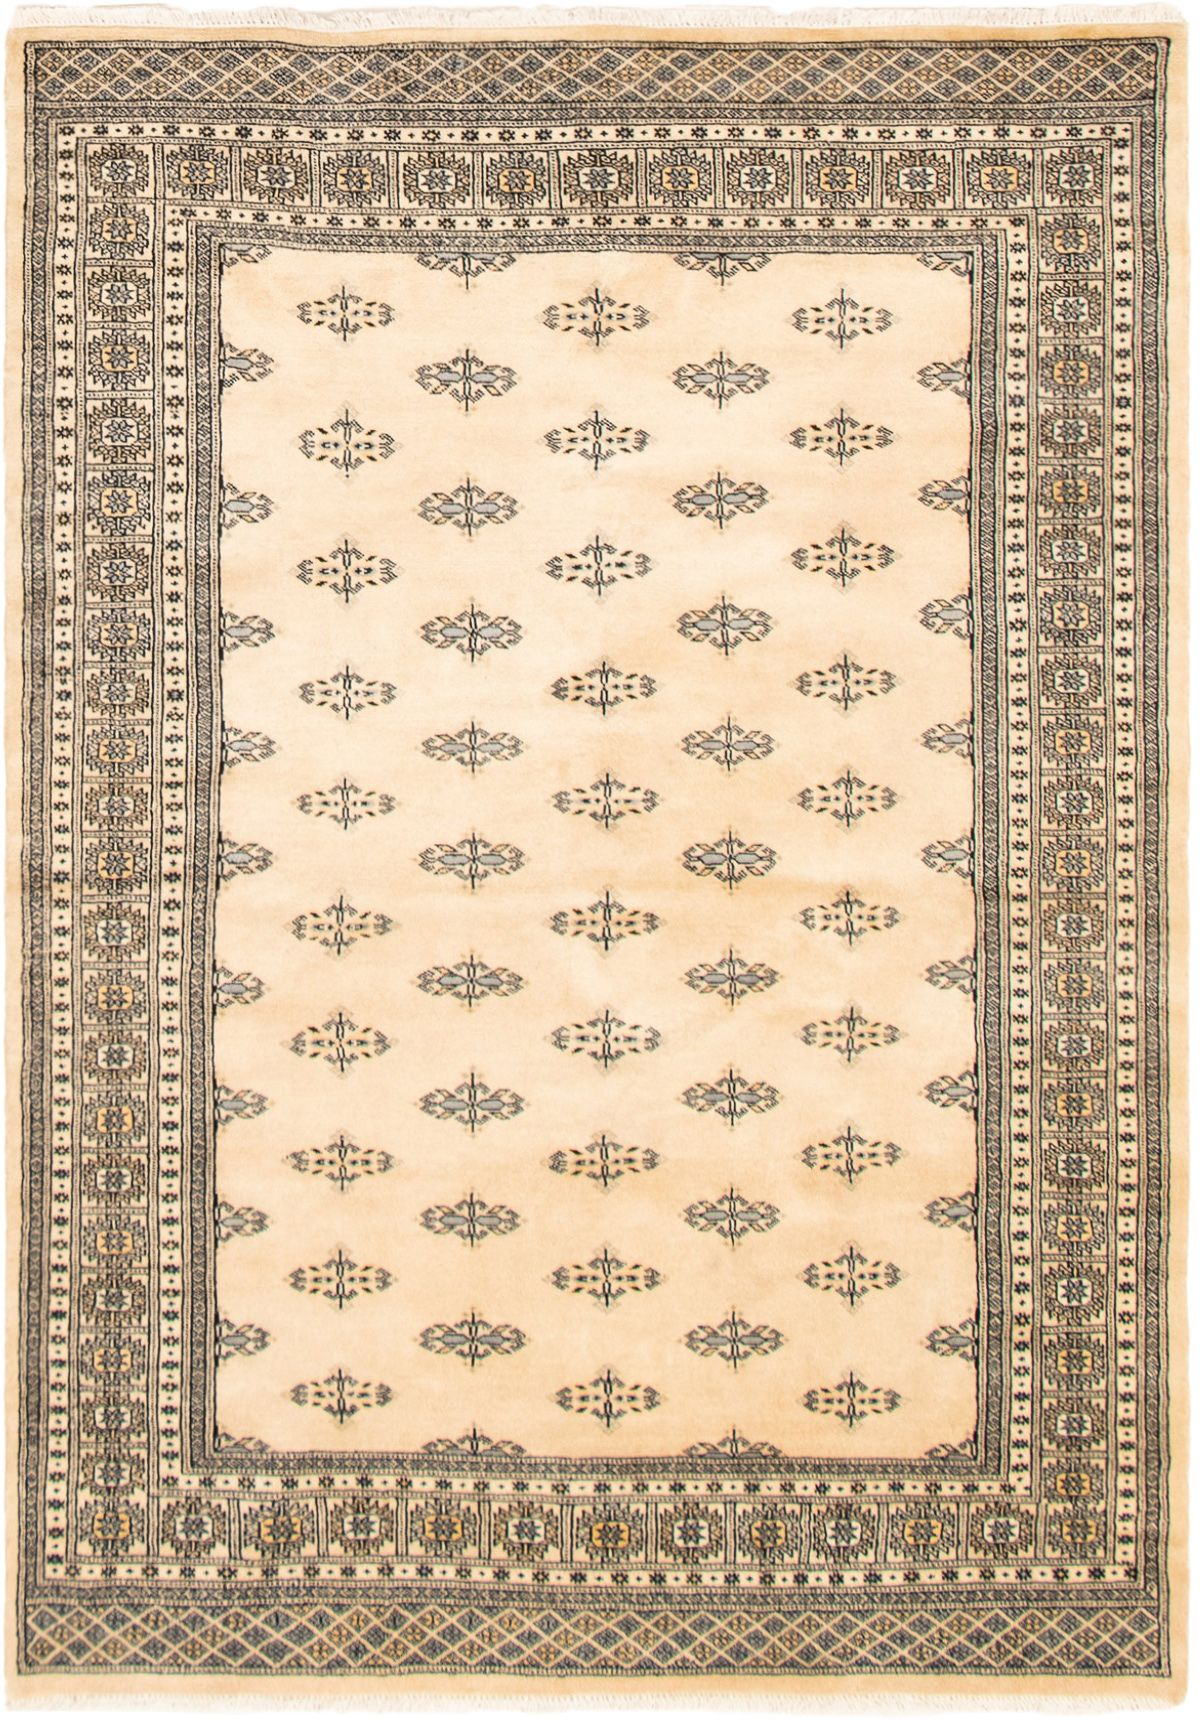 """Hand-knotted Finest Peshawar Bokhara Ivory Wool Rug 5'5"""" x 7'8"""" Size: 5'5"""" x 7'8"""""""